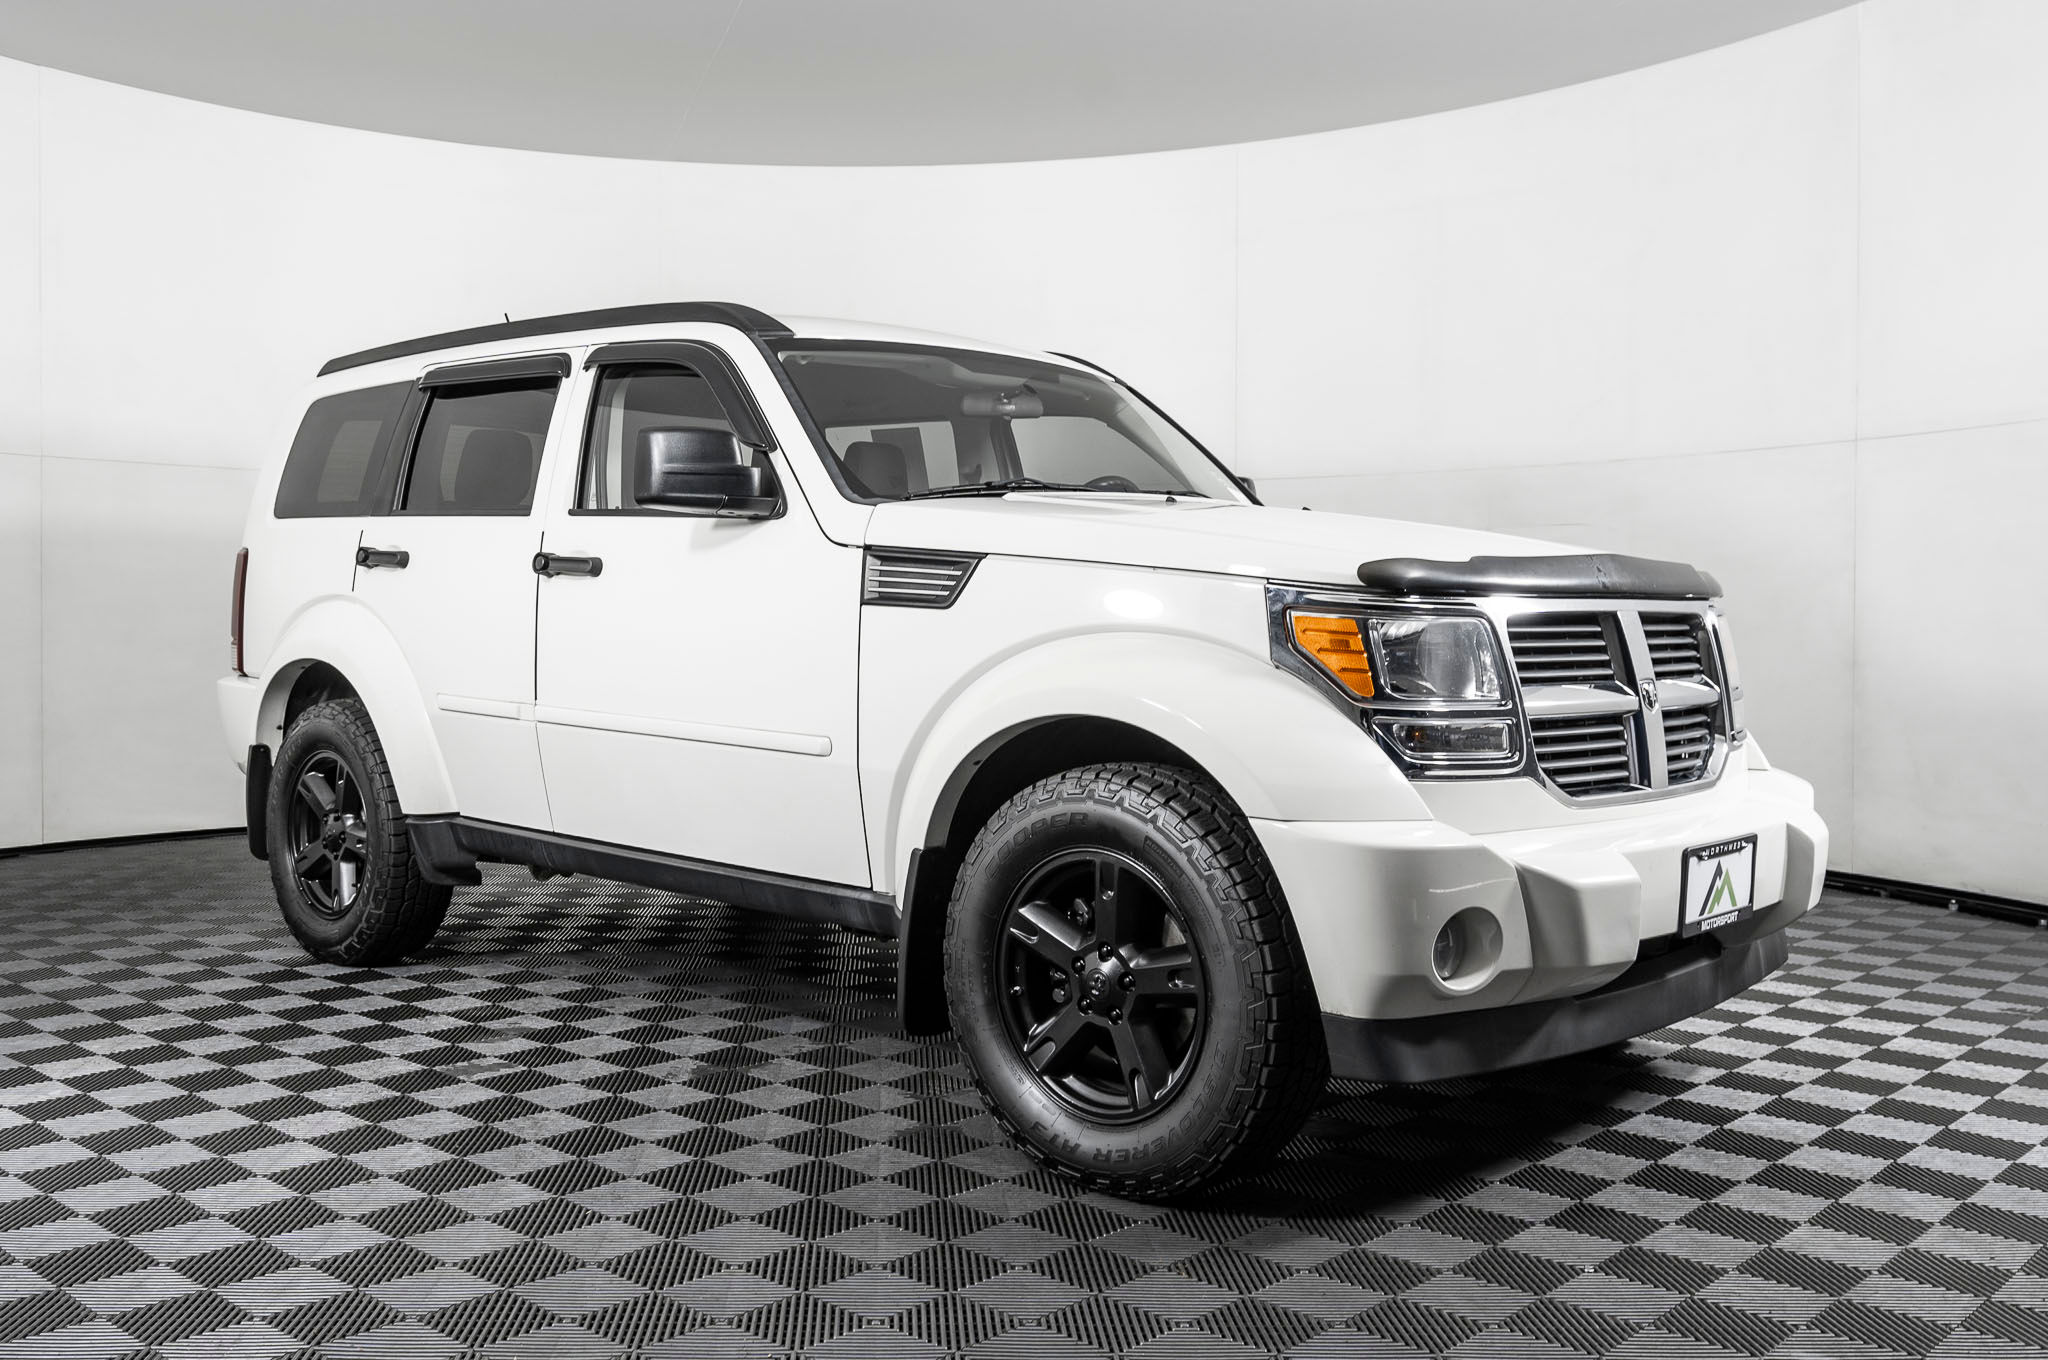 Used 2008 Dodge Nitro Sxt 4x4 Suv For Sale Northwest Motorsport